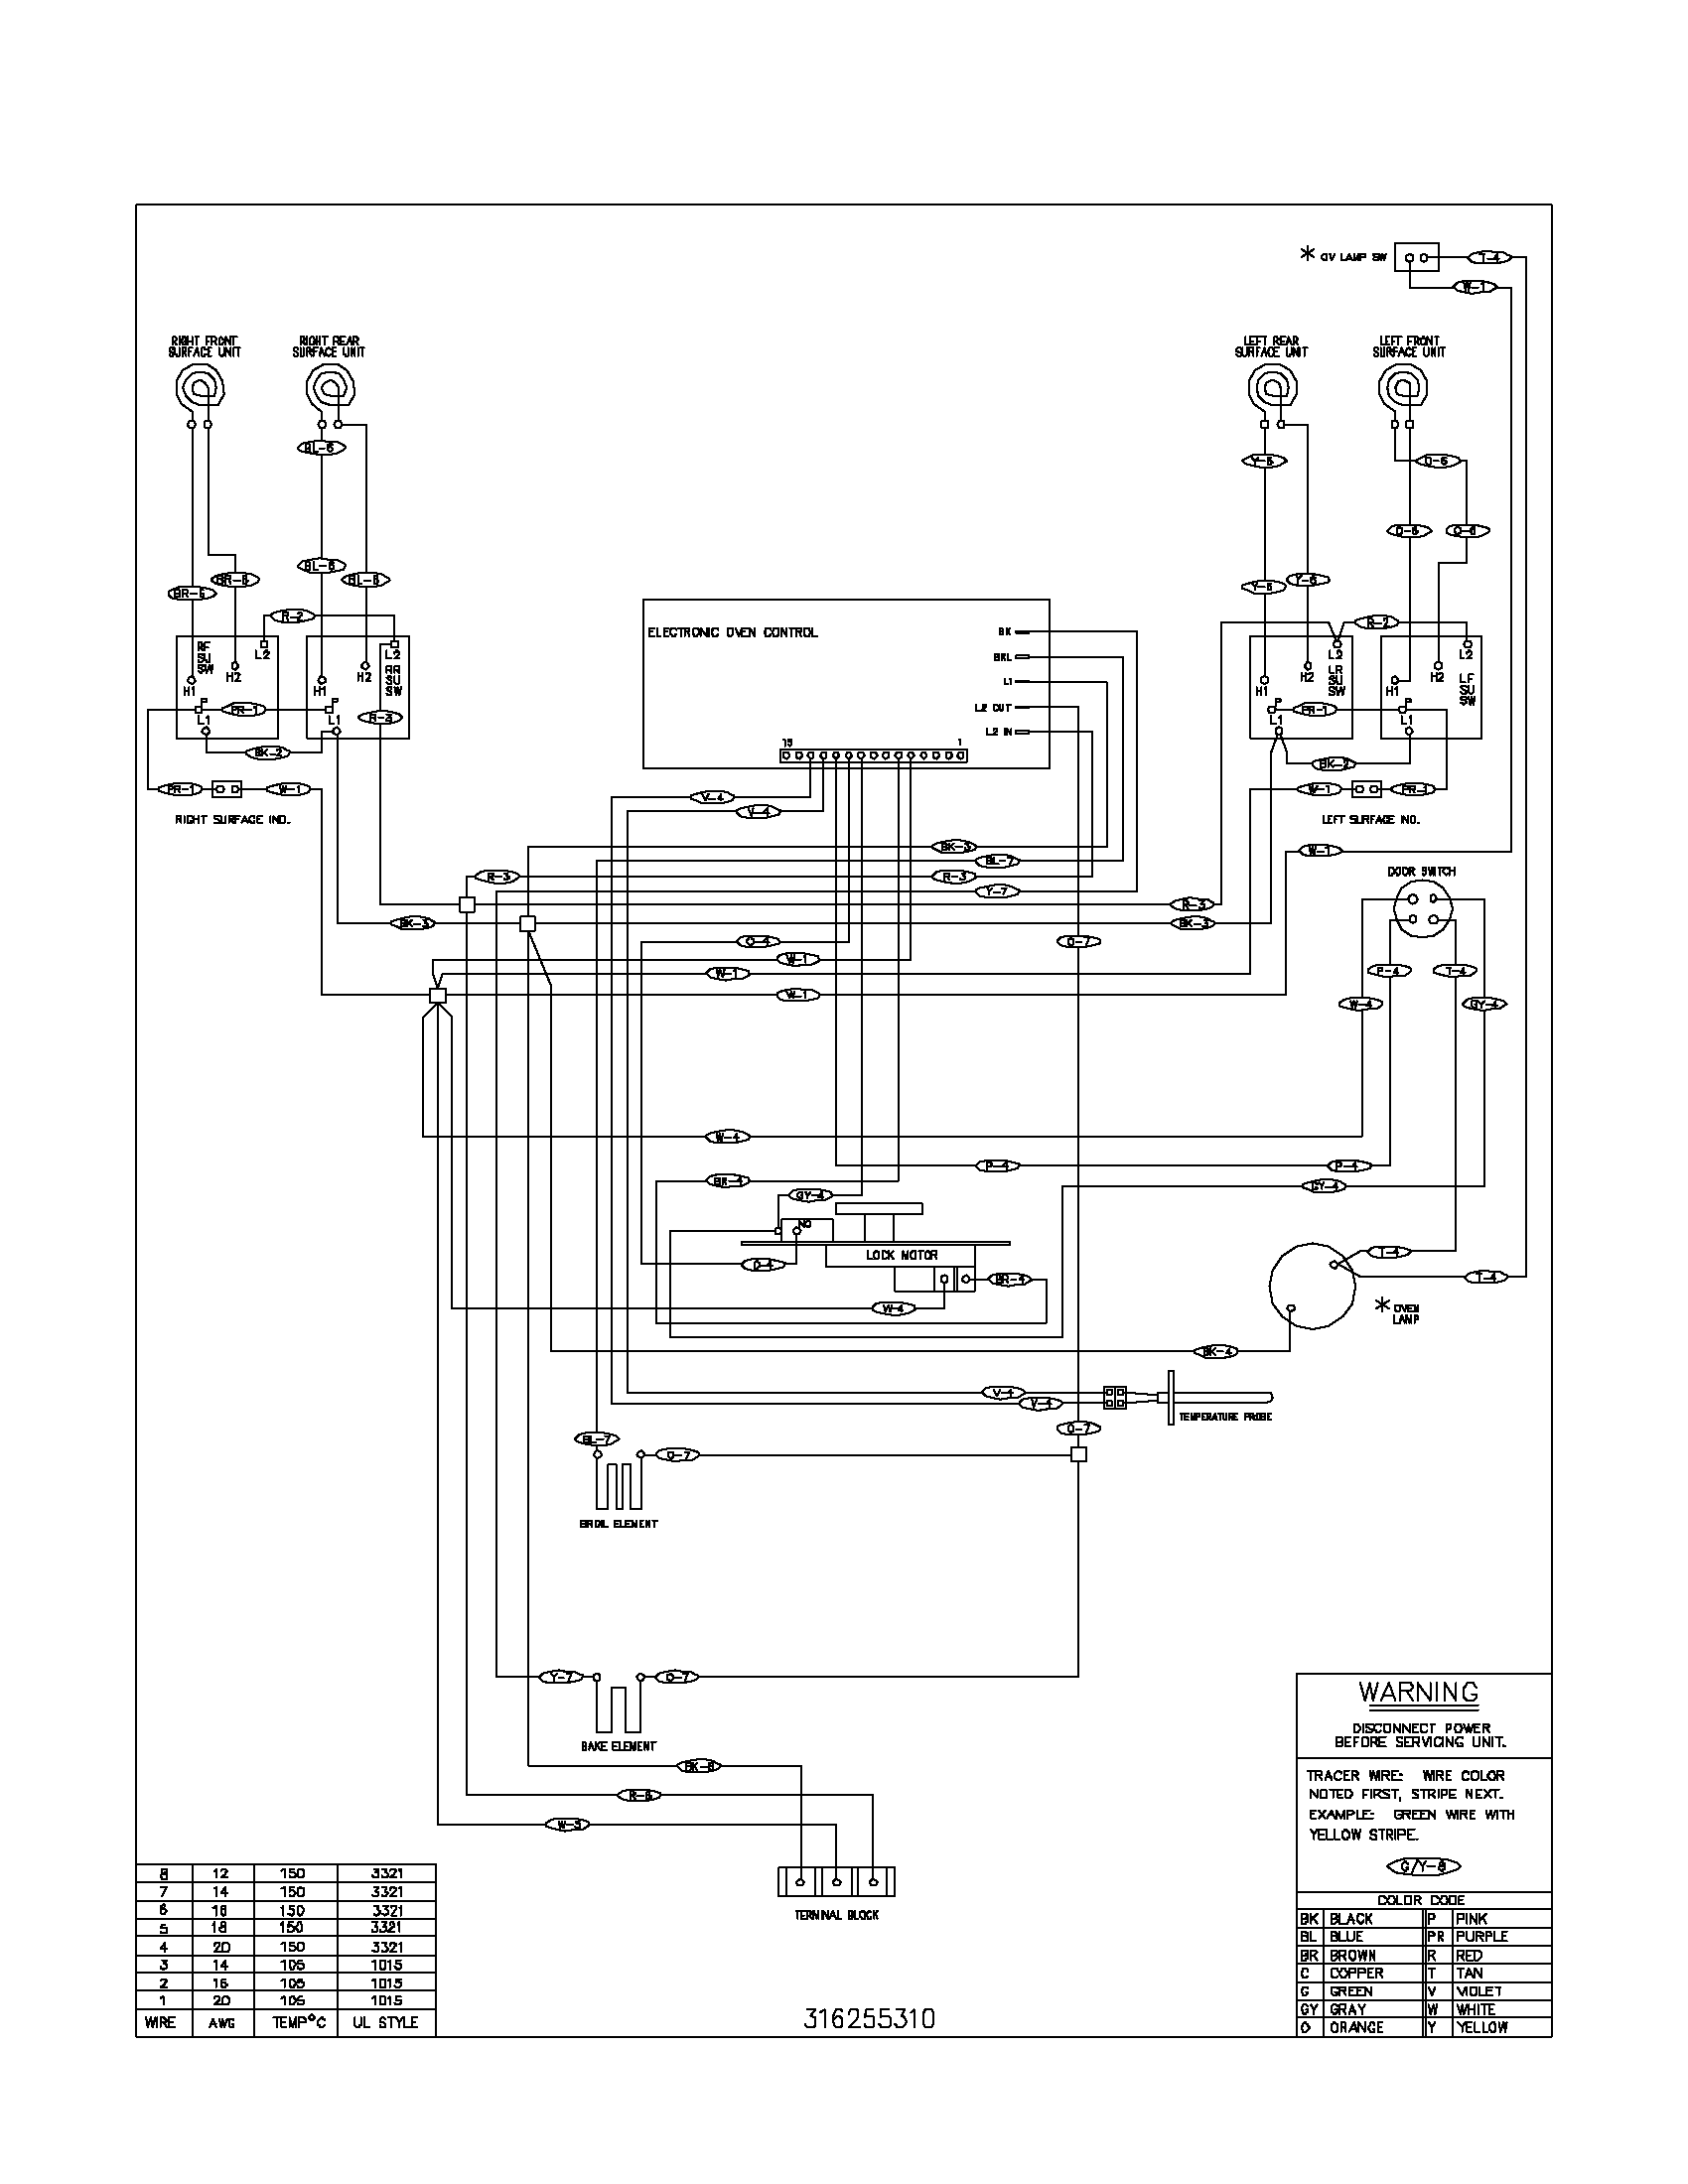 wiring diagram parts wiring diagram for frigidaire dryer the wiring diagram wiring diagram for gler341as2 at crackthecode.co